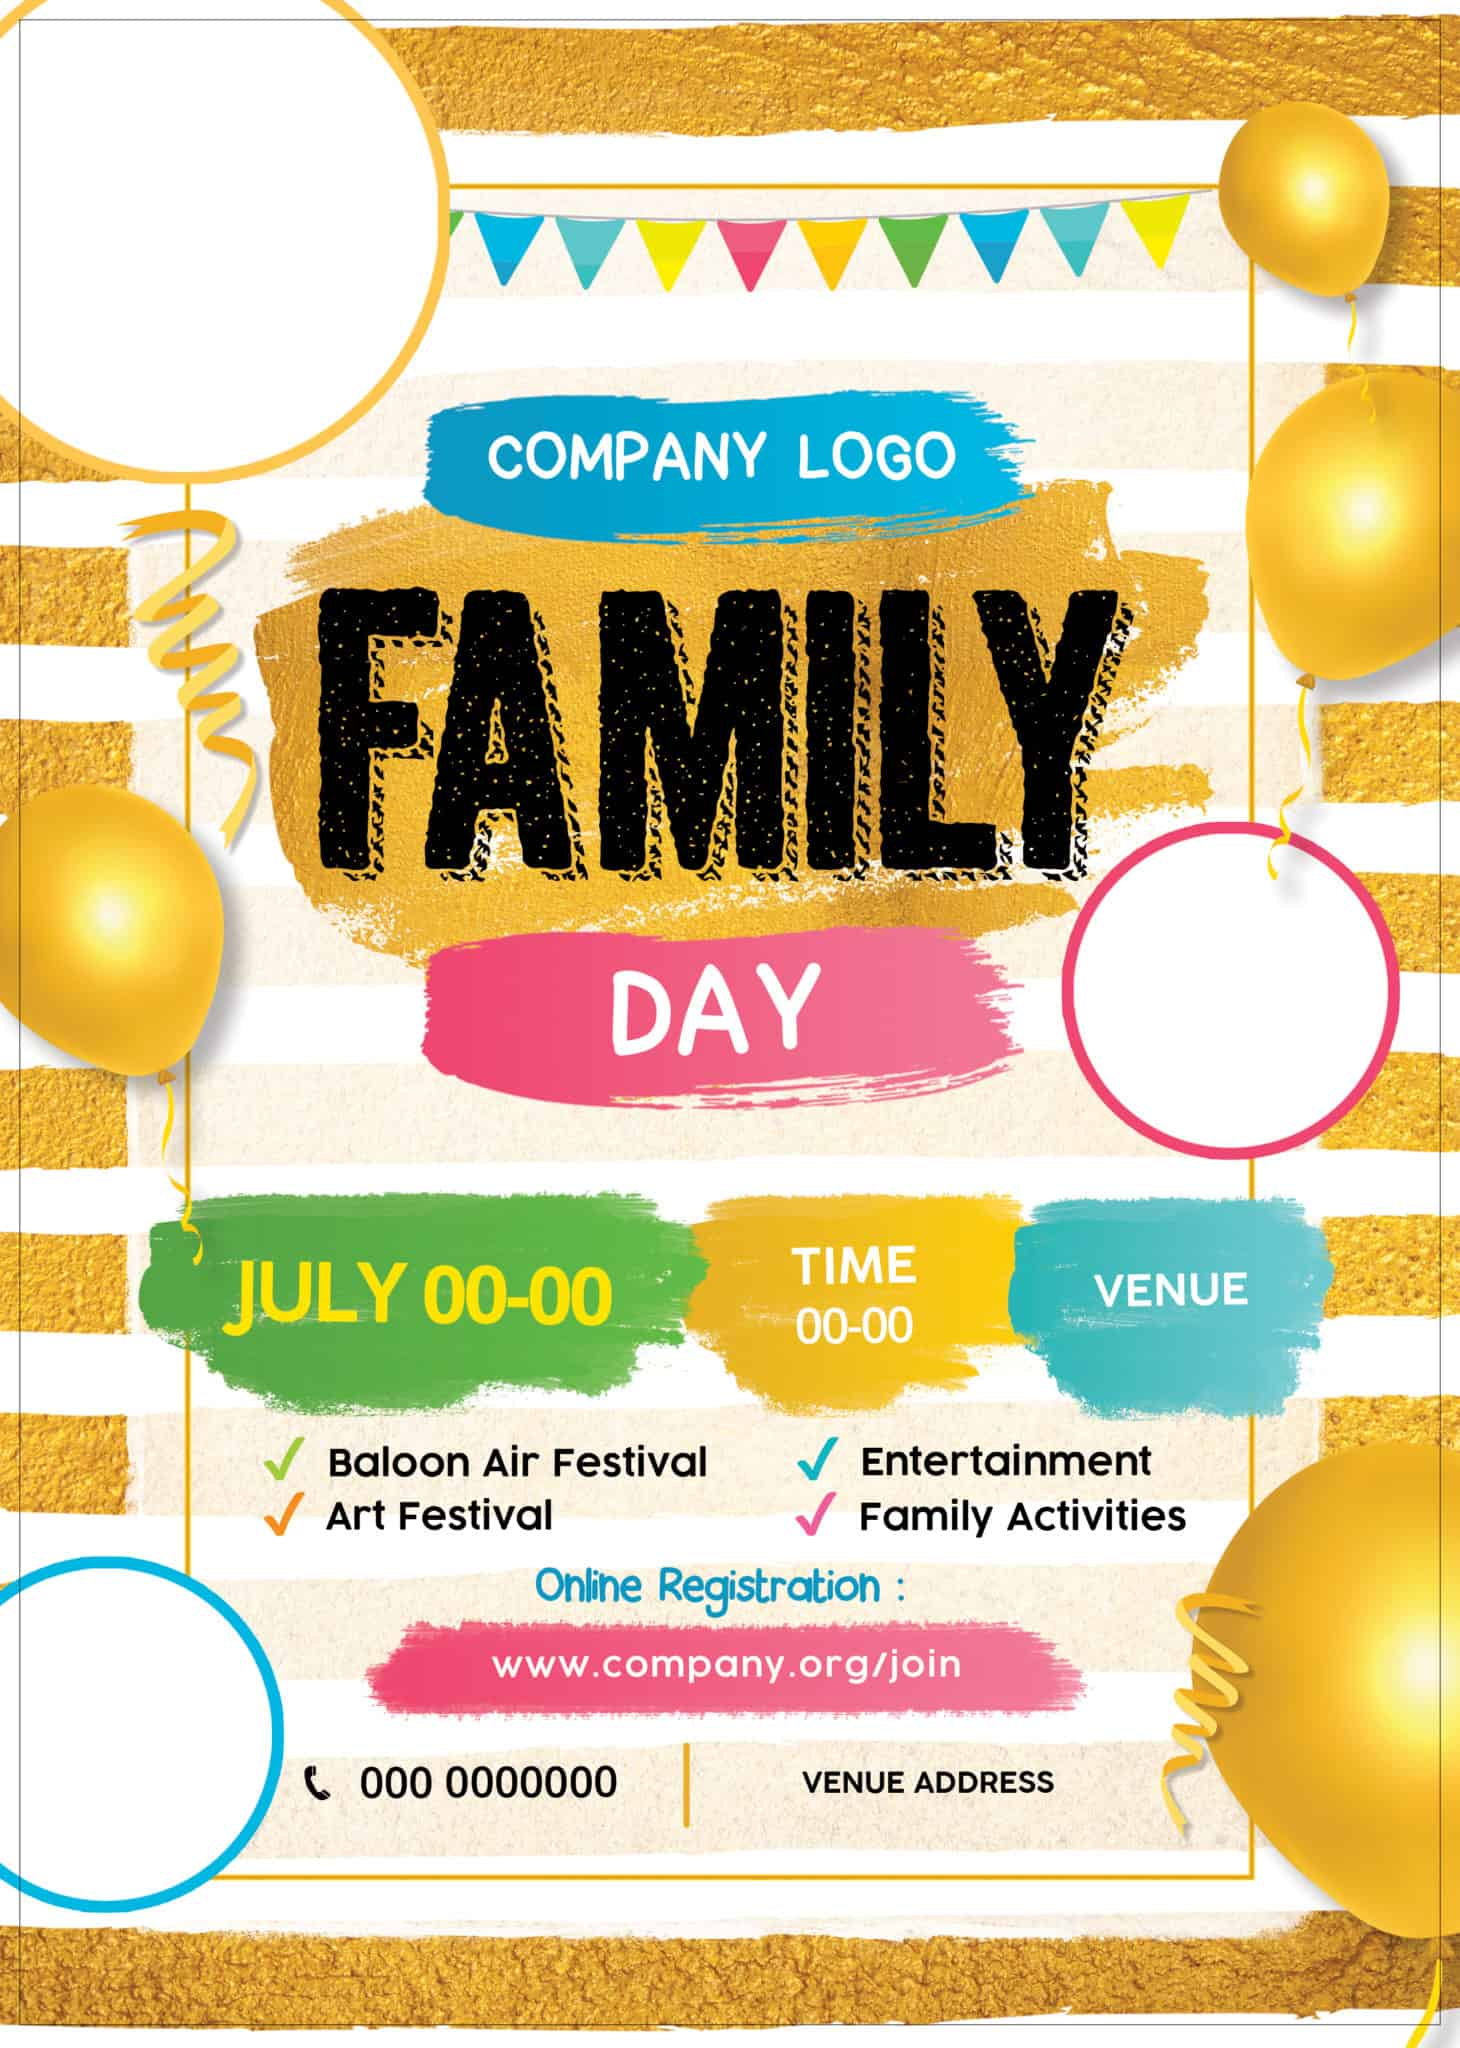 Our designers have designed more family day posters than we can use so here they are for you if you see any poster design that you like and want an